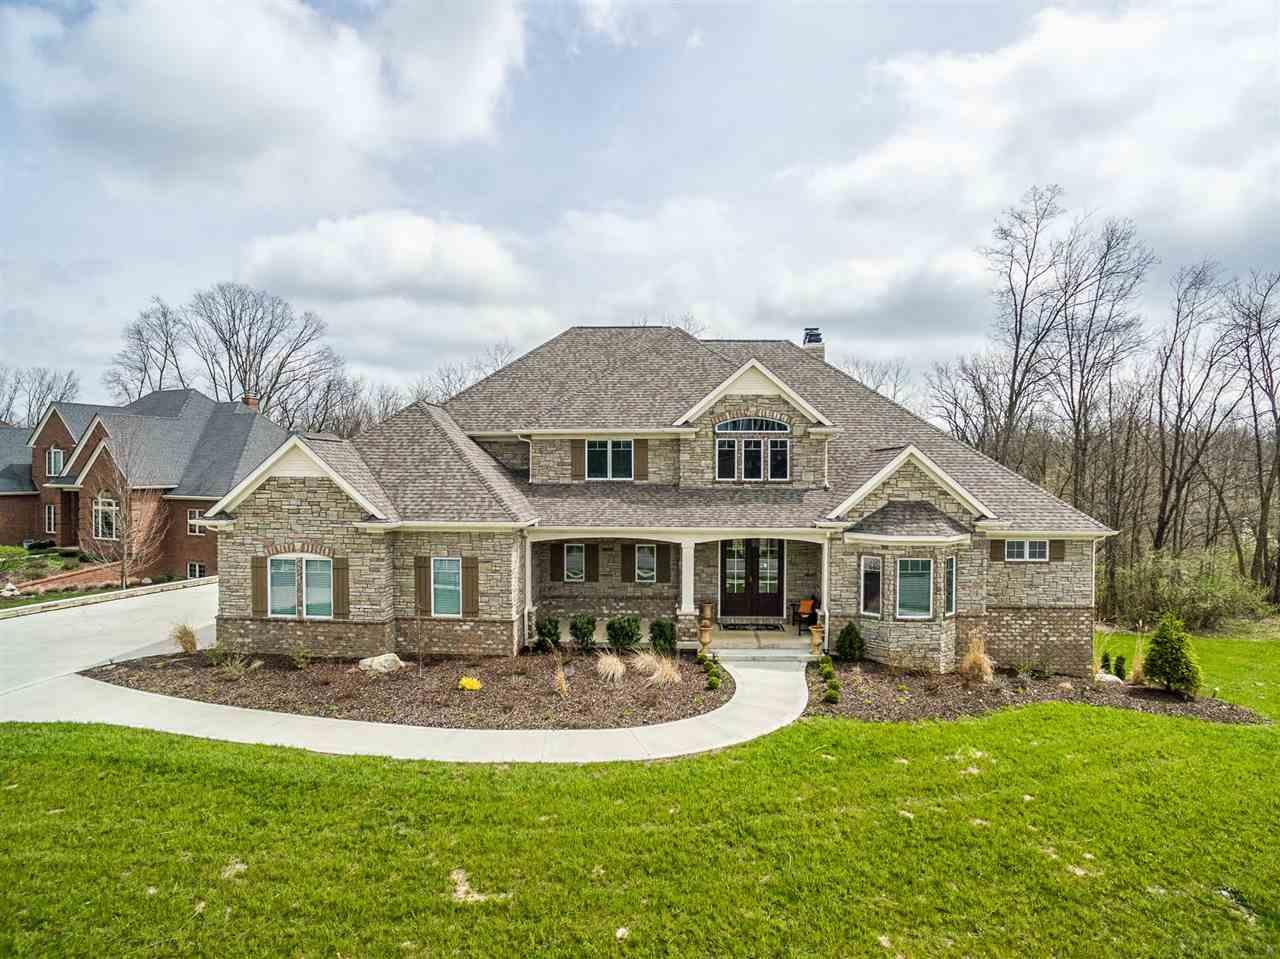 4025 Cantwell Boulevard, Fort Wayne, IN 46814